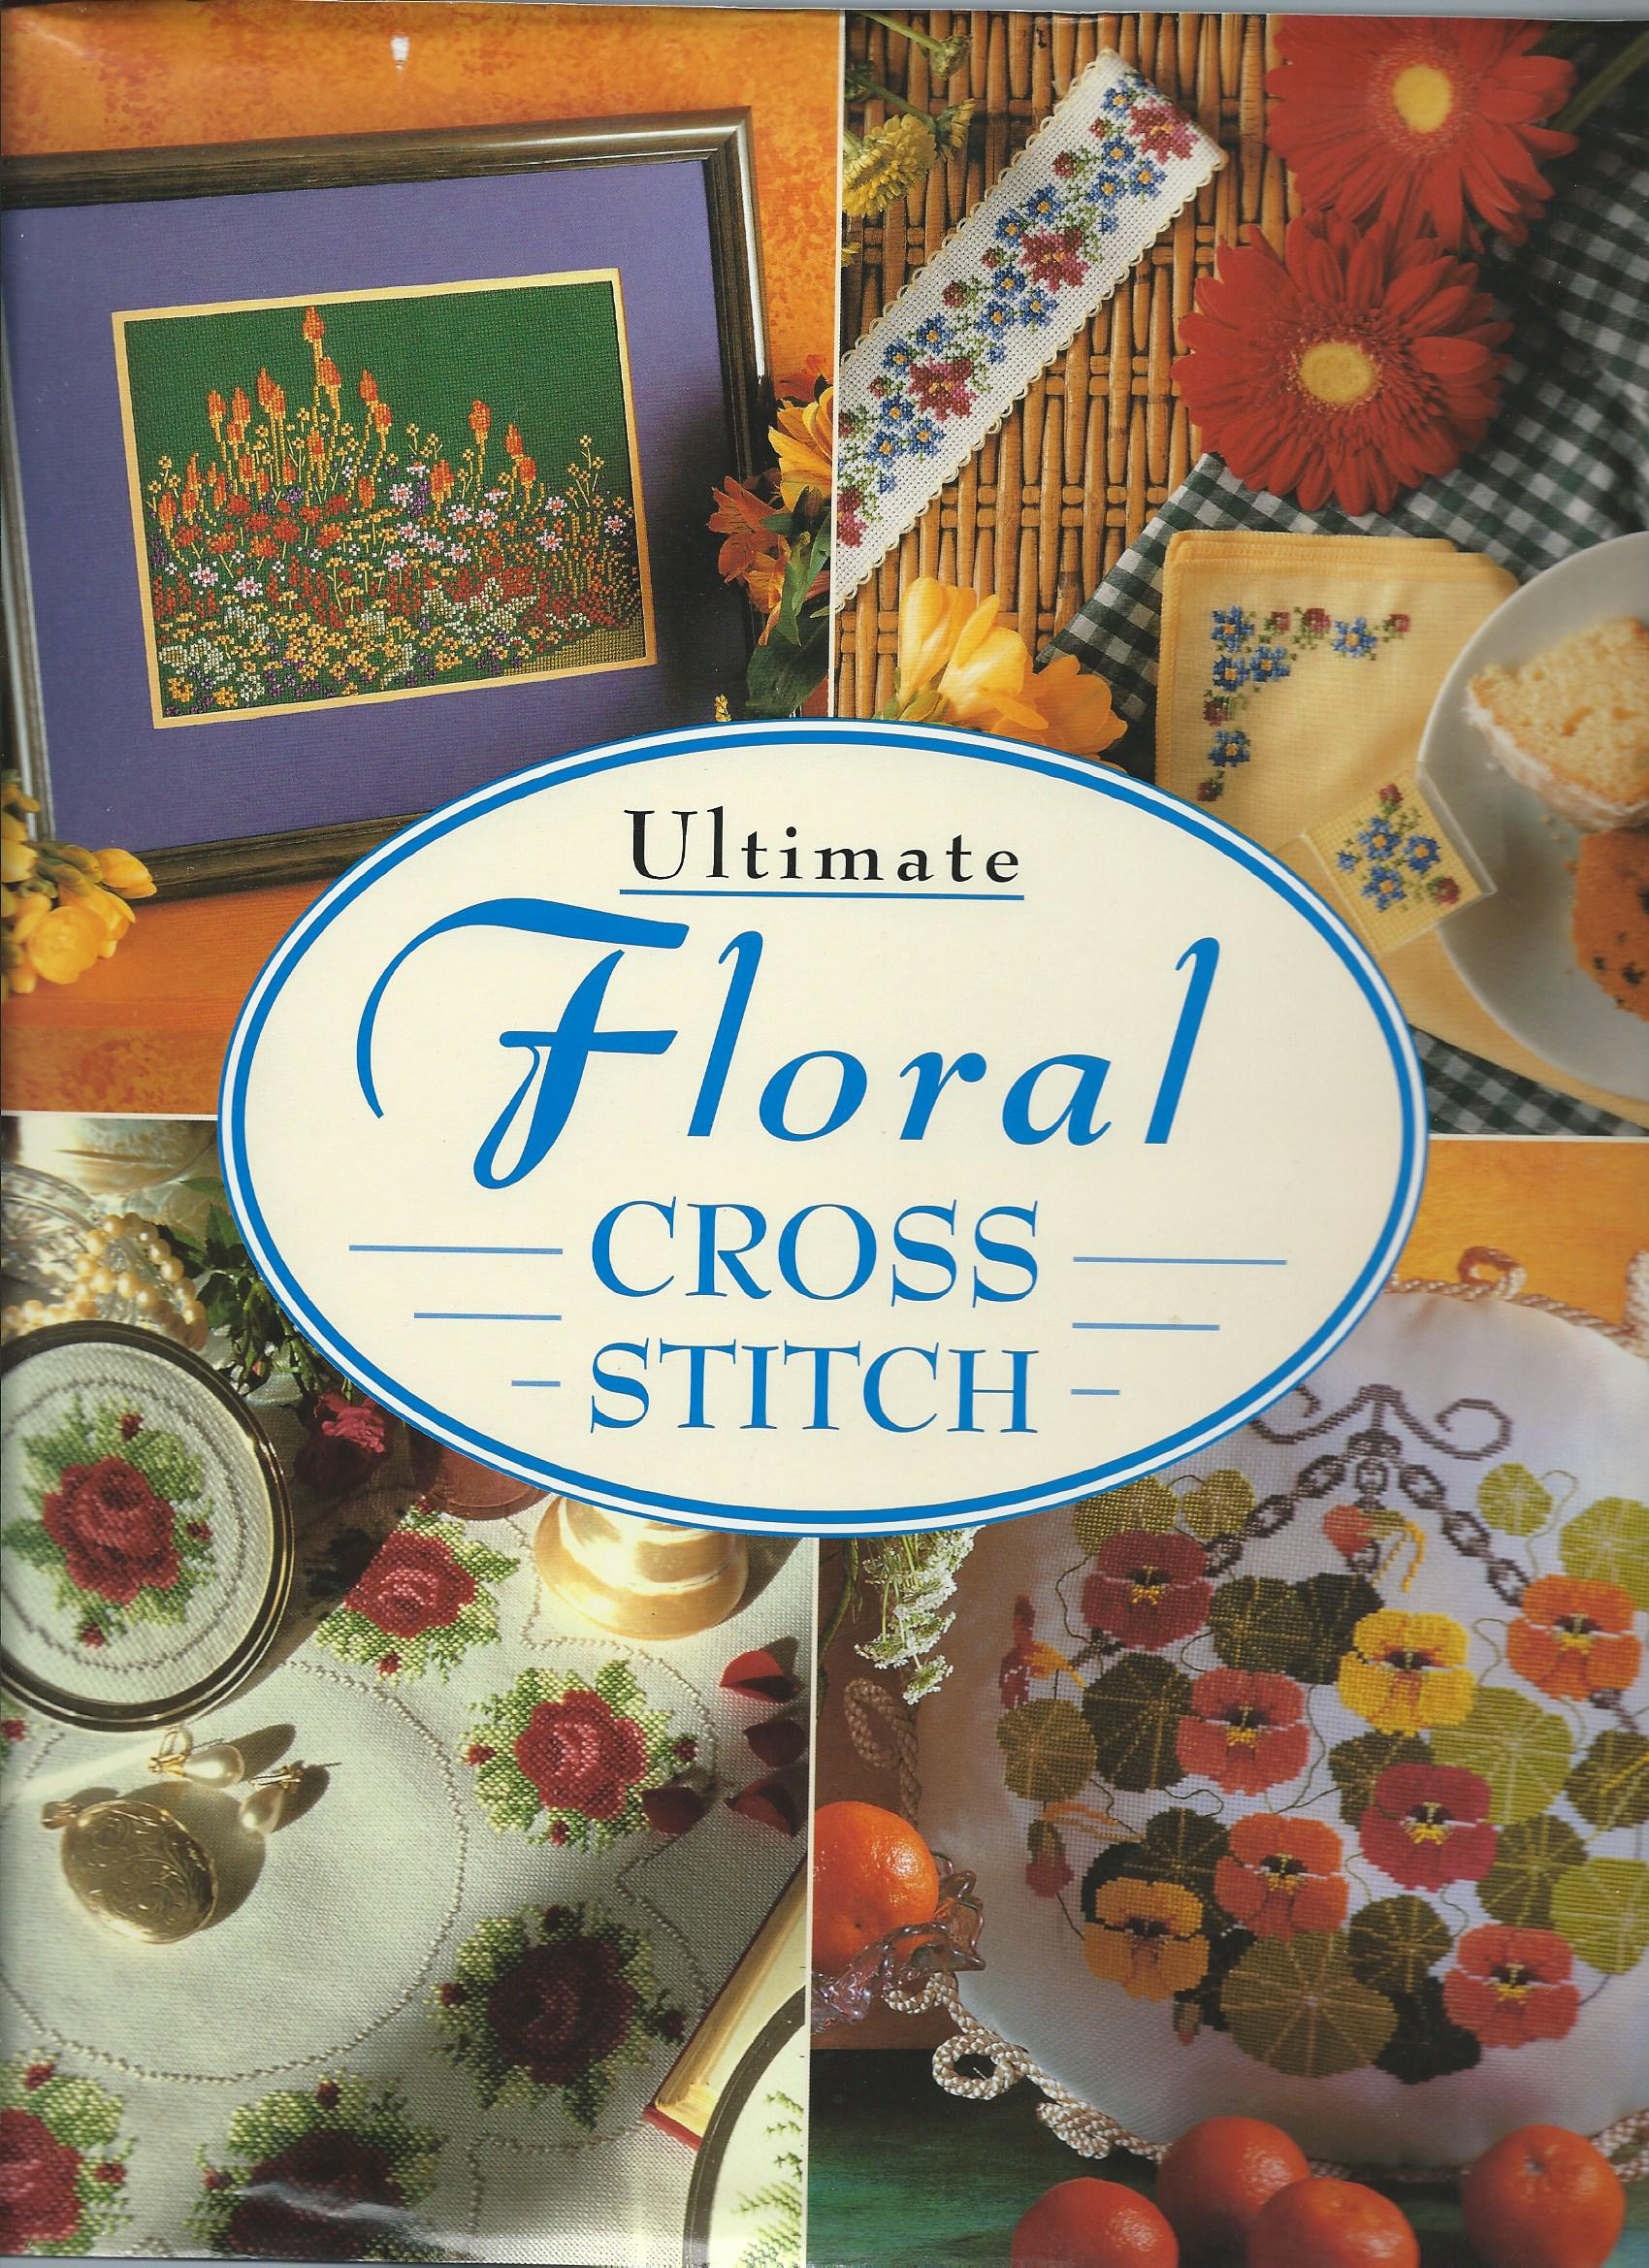 Ultimate Floral Cross Stitch